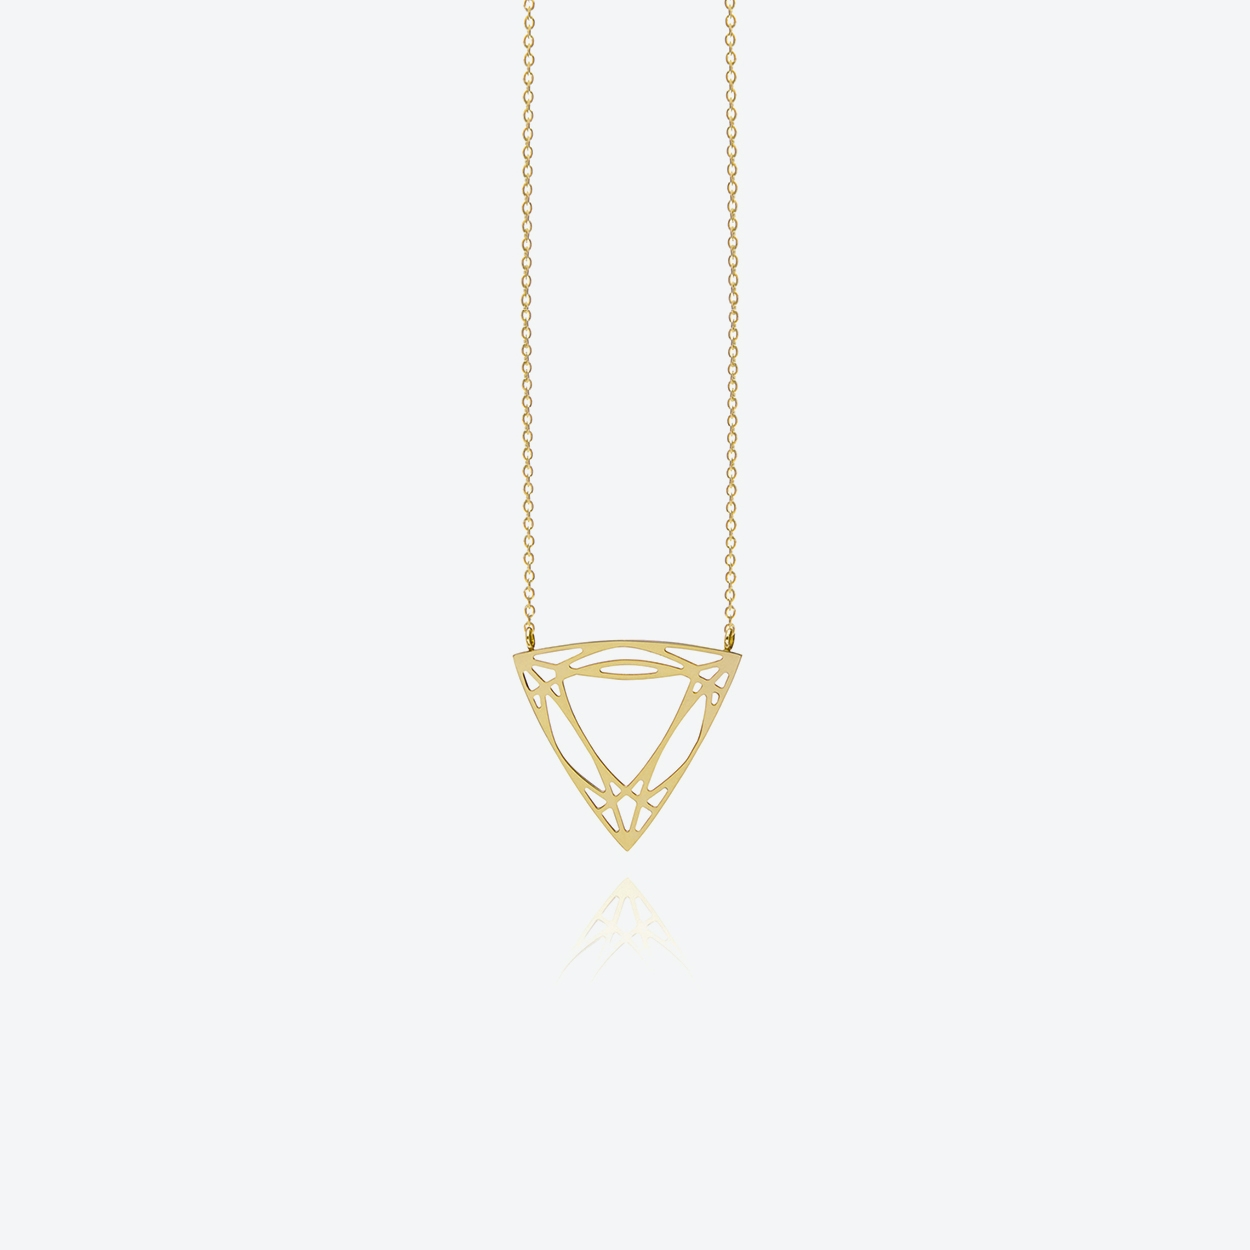 Trillion Diamond Necklace in Gold